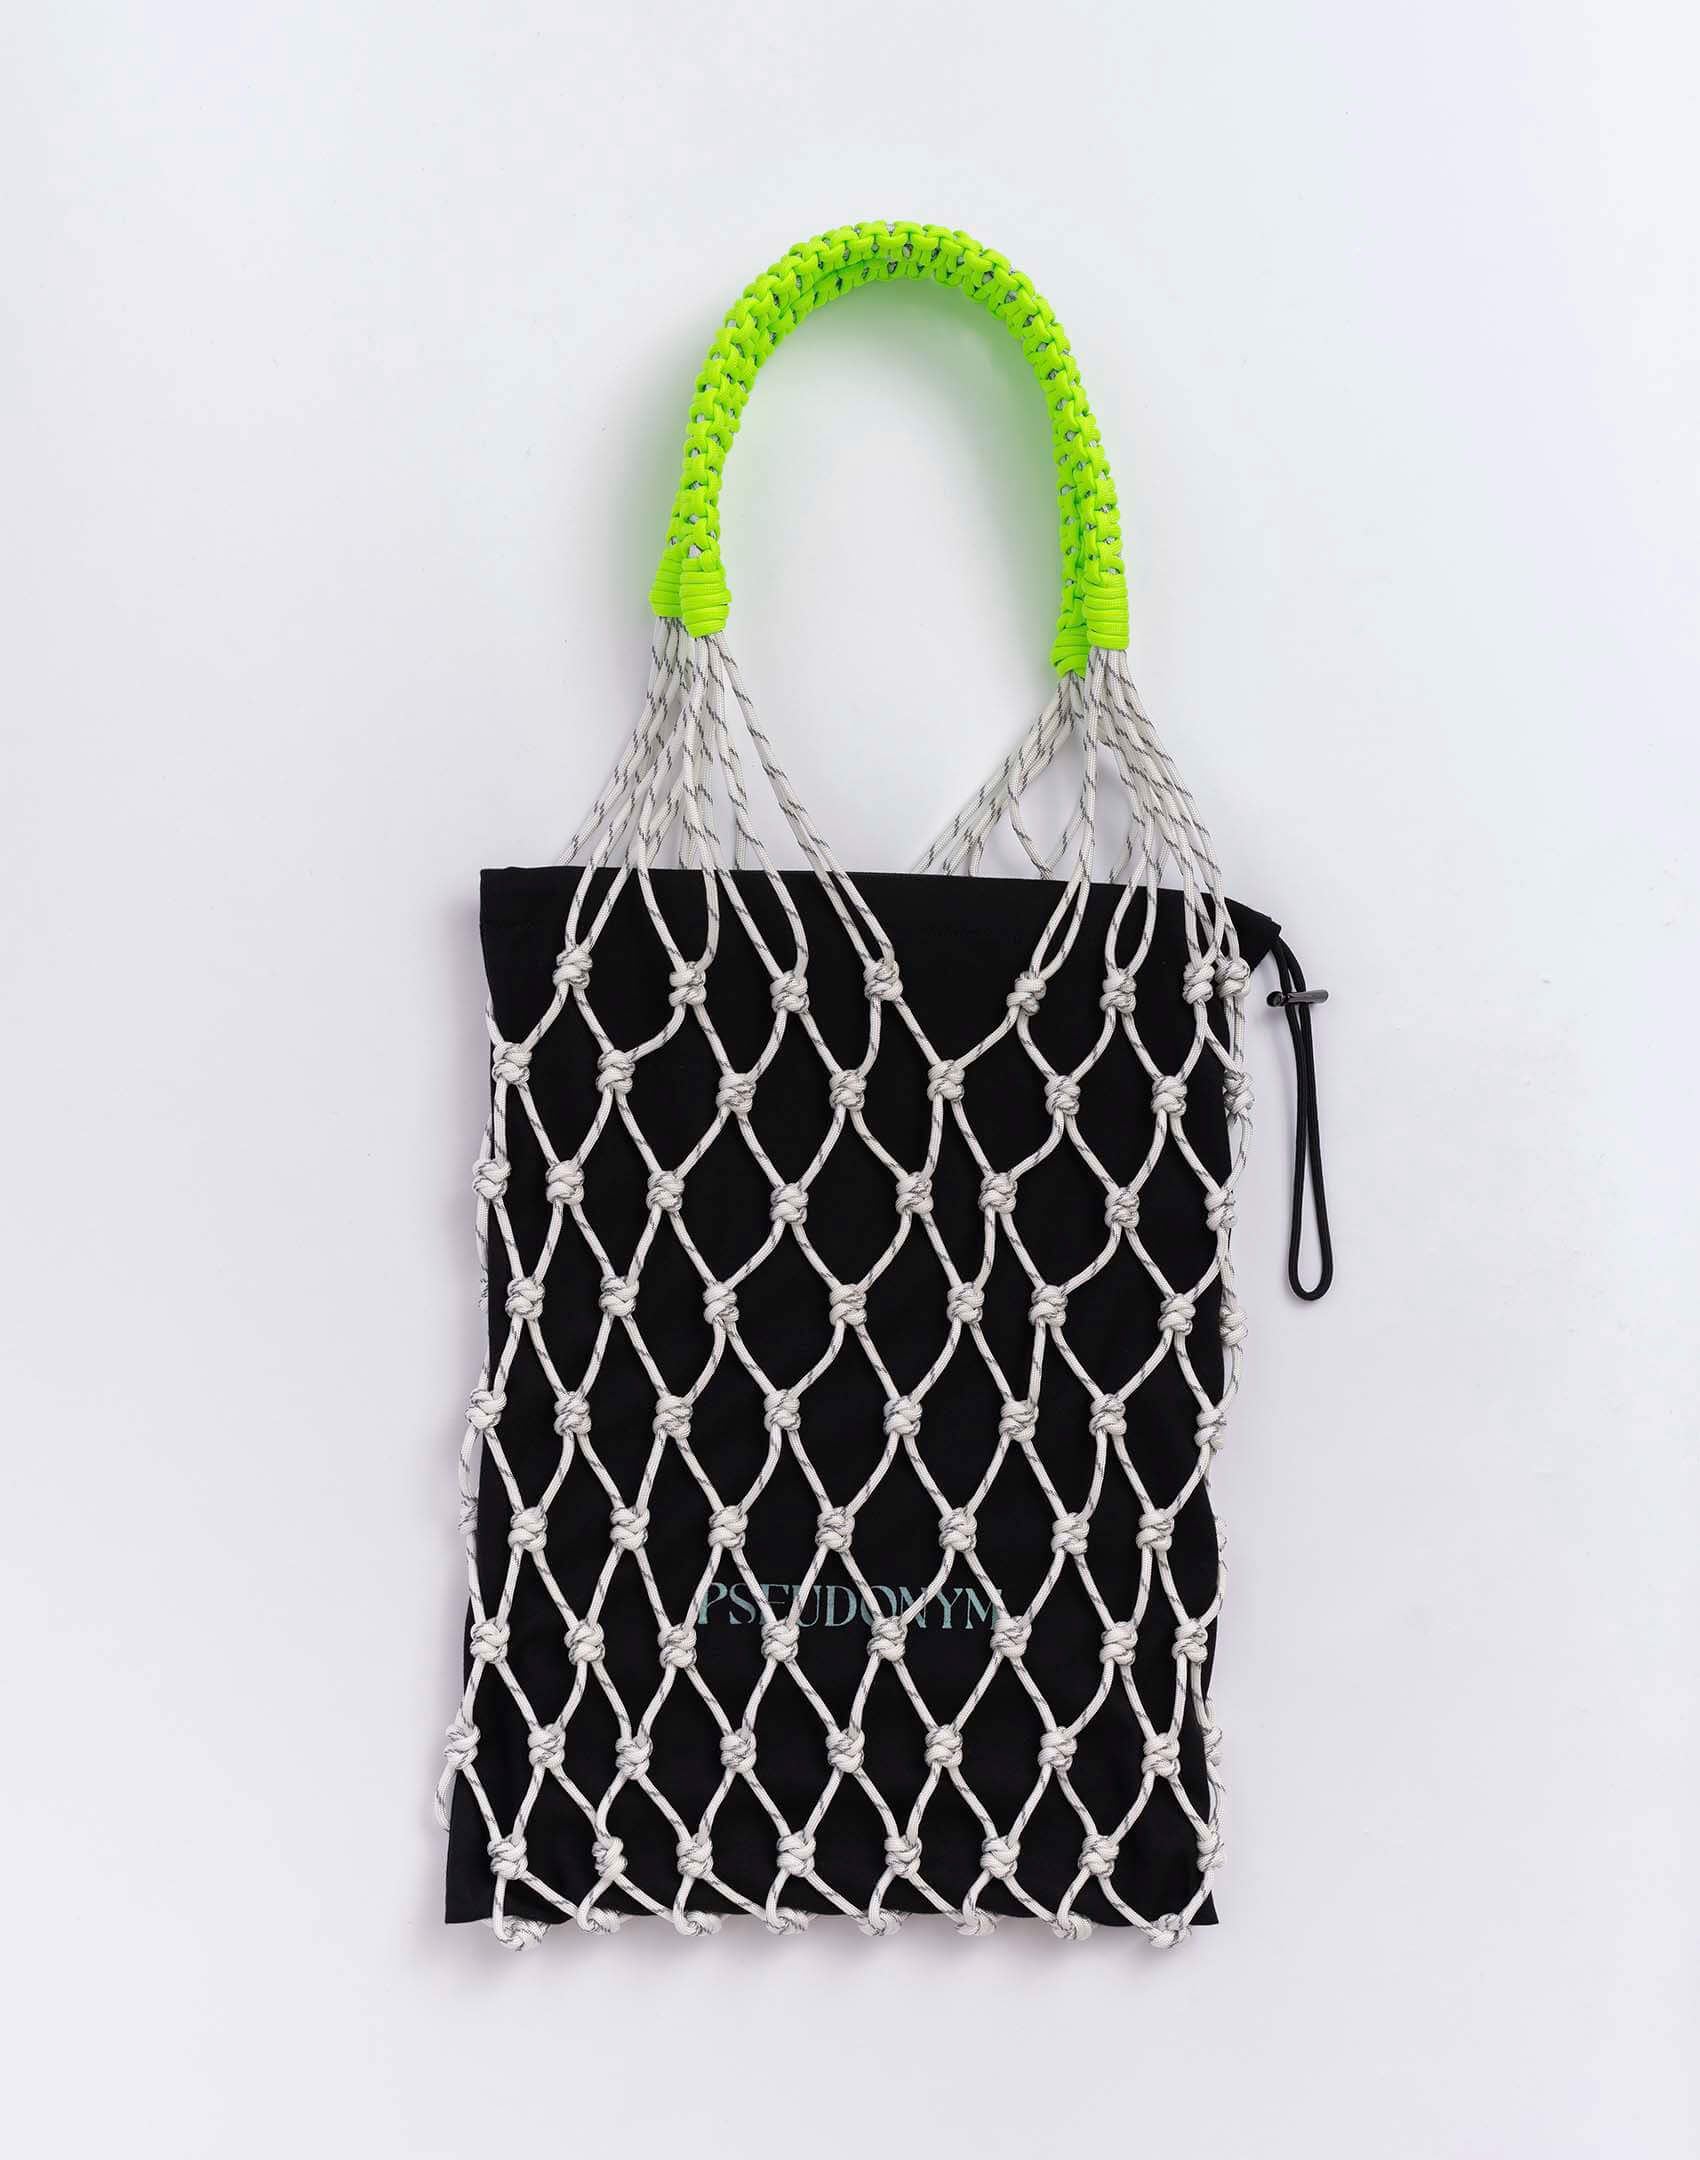 P.S. Field Bag 15 (Dad Shoe), white reflective/neon green colorway.